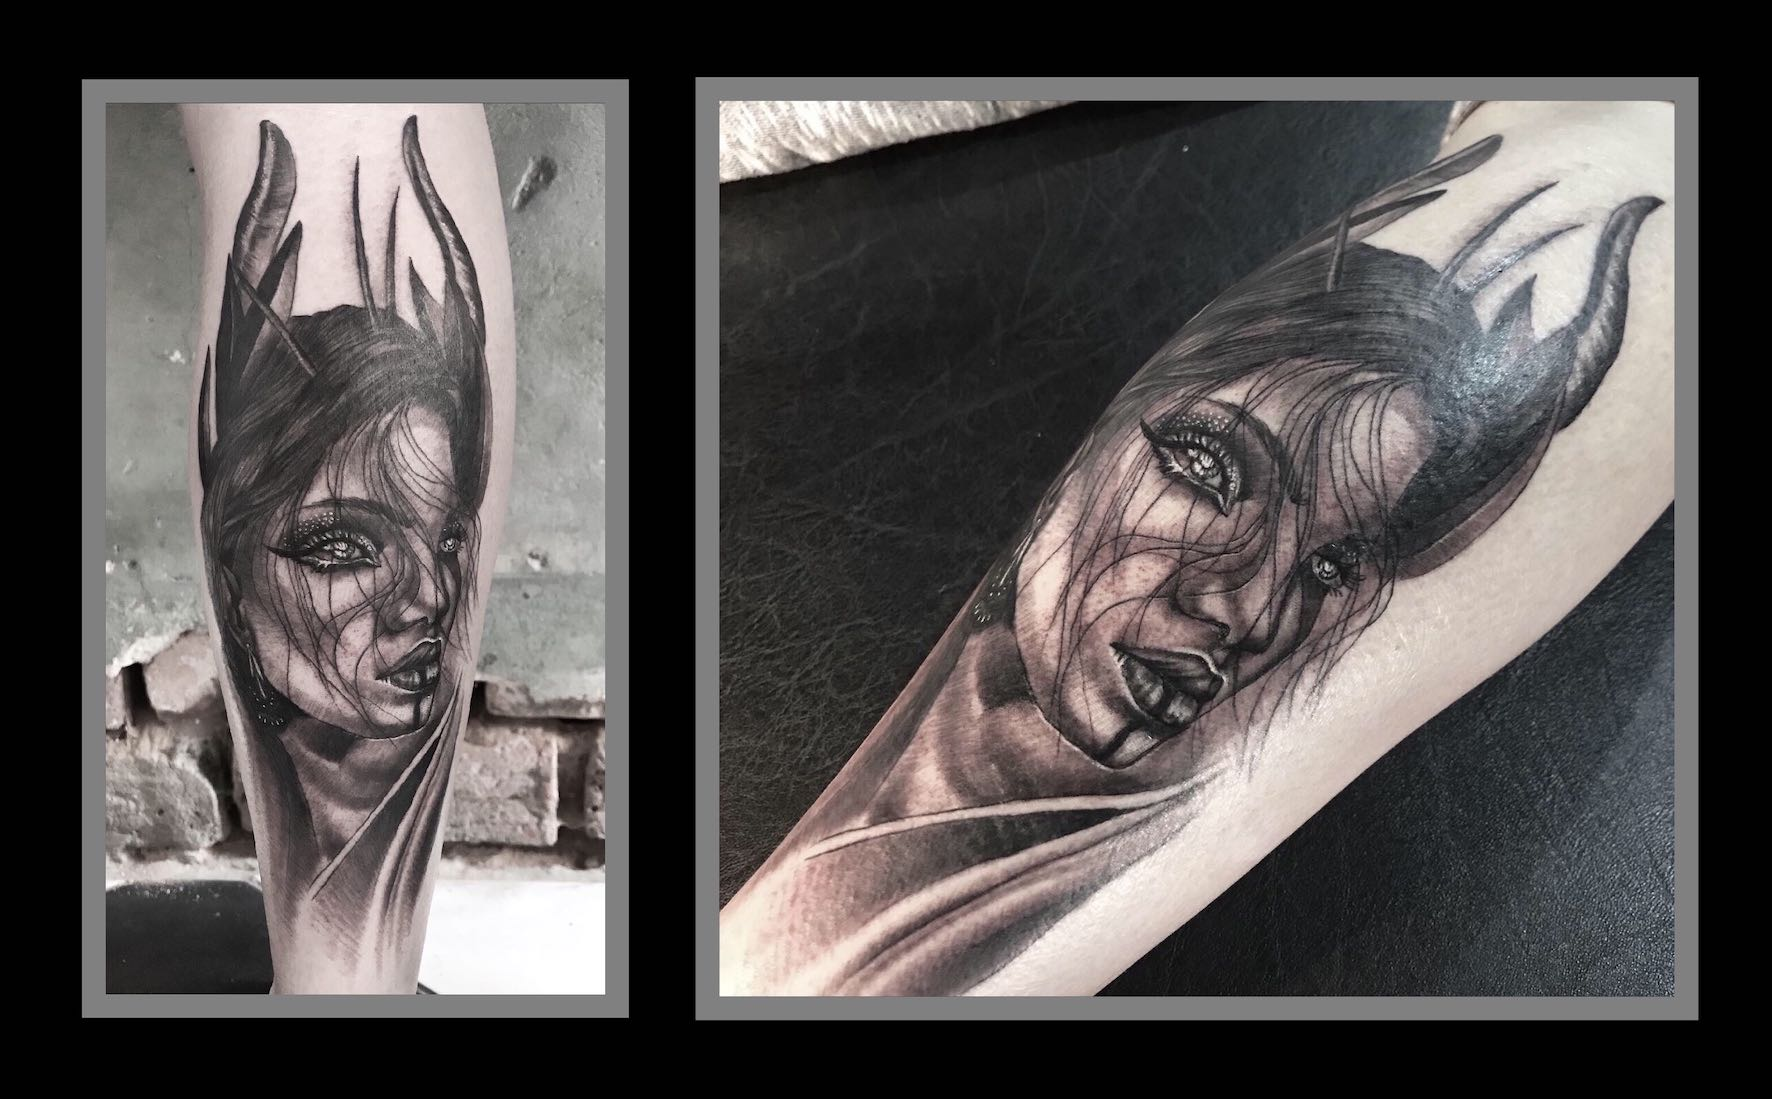 Black and Grey realism tattoo work done by Shayleen Asher-Wood